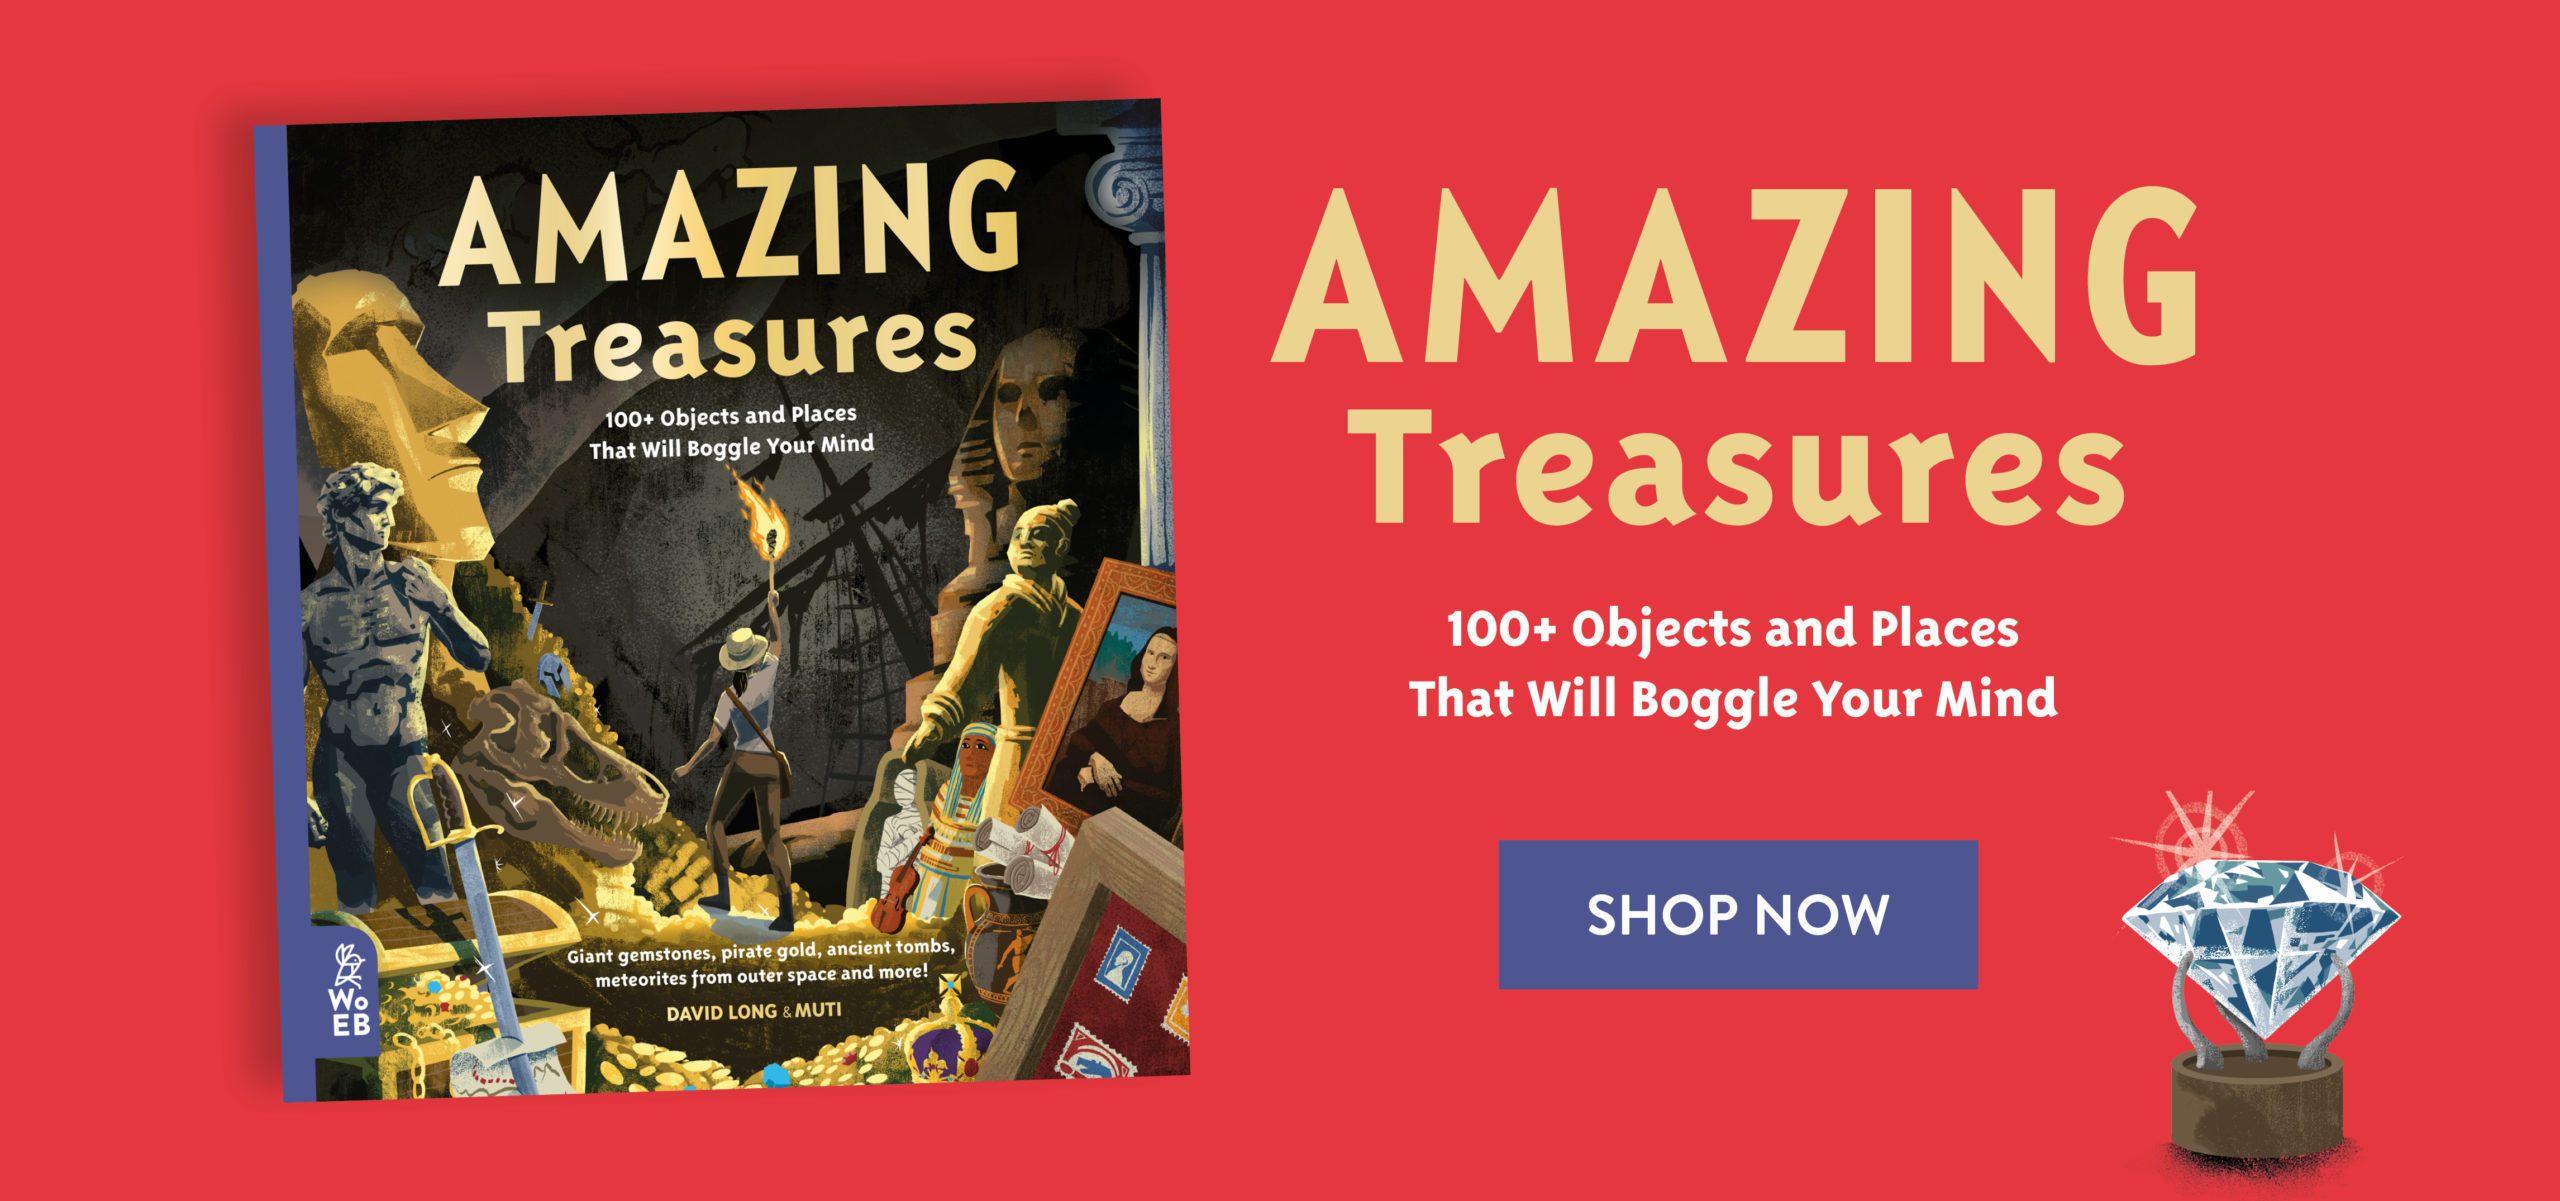 Amazing Treasures